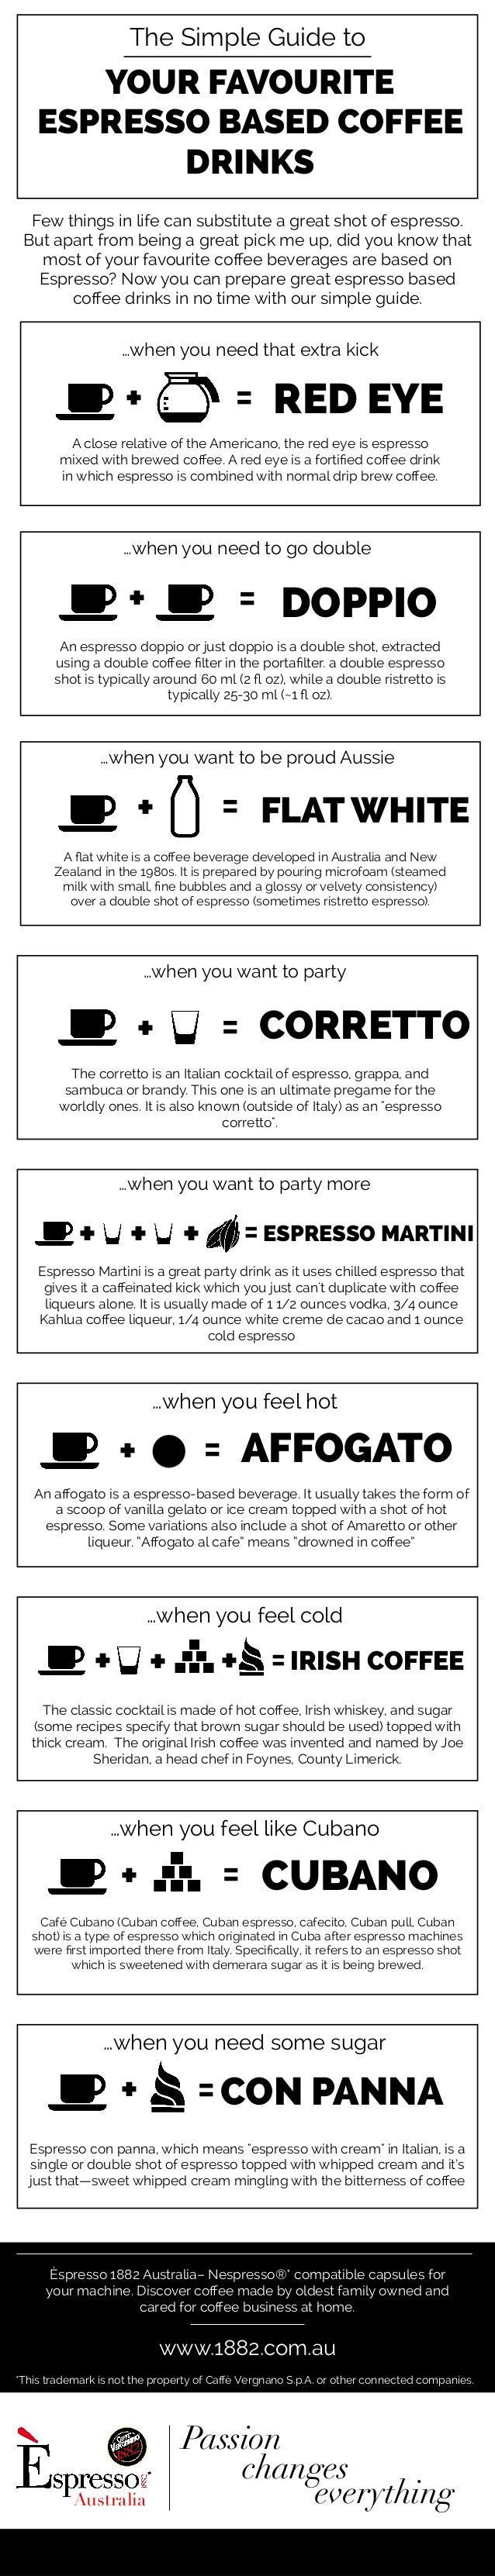 YOUR FAVOURITE ESPRESSO BASED COFFEE DRINKS The Simple Guide to Few things in life can substitute a great shot of espresso...